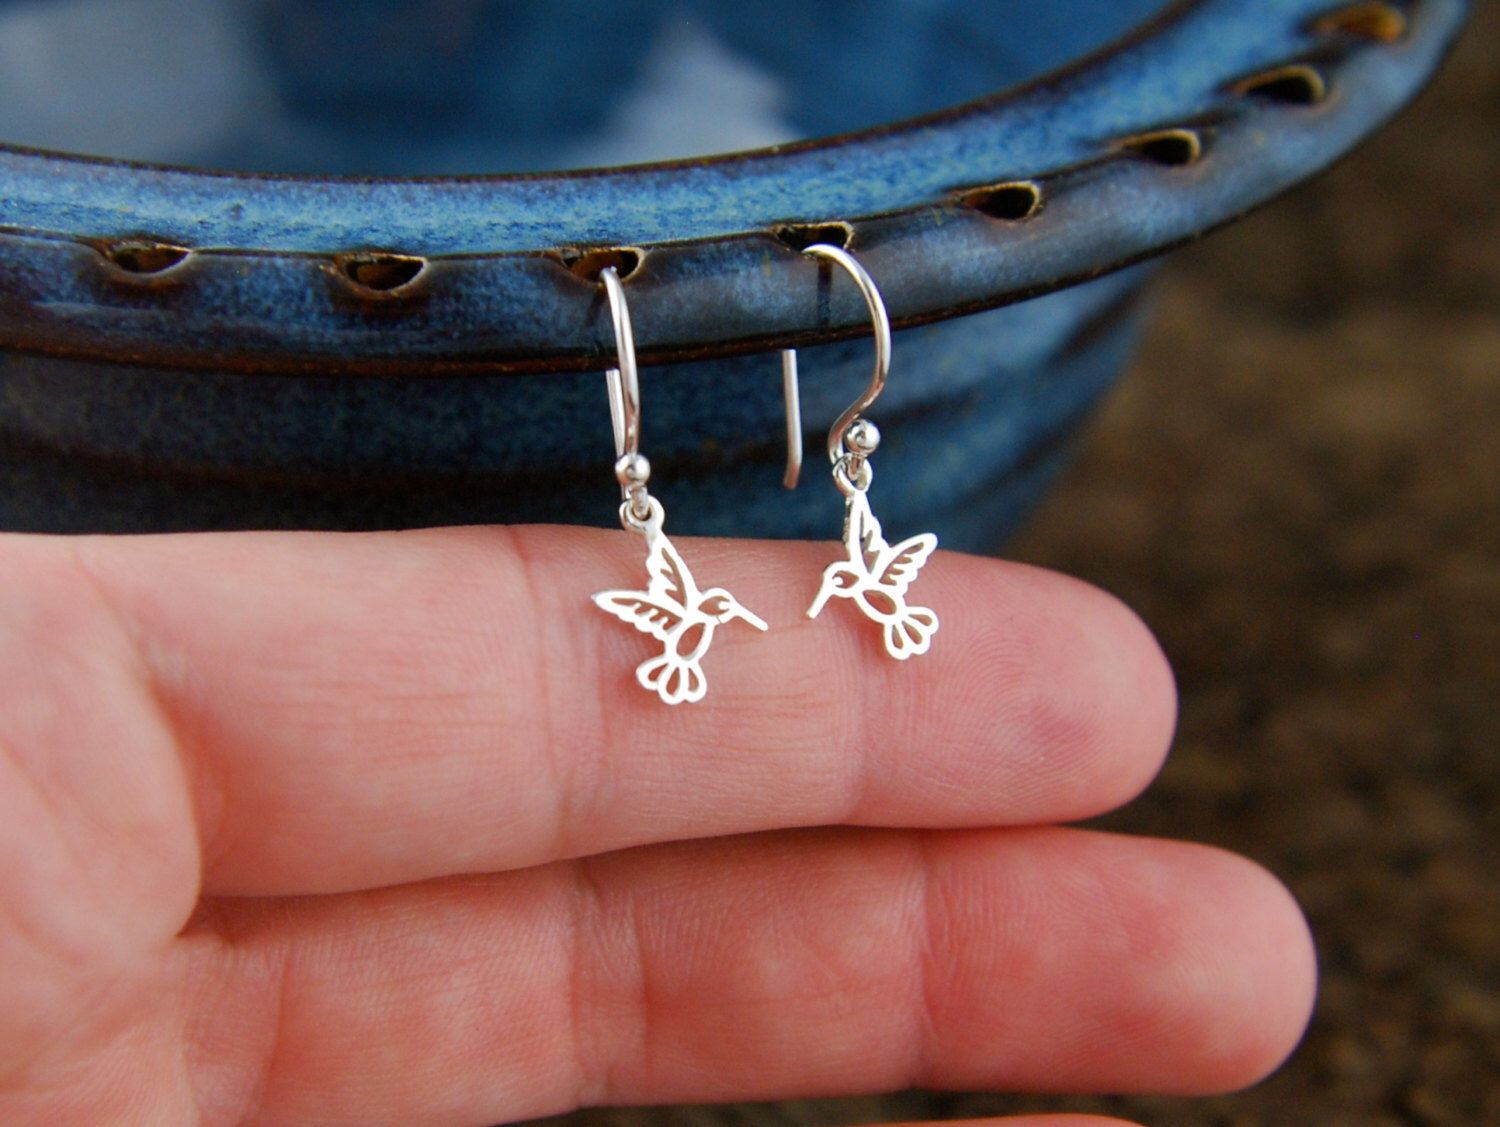 Tiny hummingbird charm earrings in sterling silver, hummingbird earrings, silver bird earrings, bird charm, tiny bird by jersey608jewelry on Etsy https://www.etsy.com/listing/79149511/tiny-hummingbird-charm-earrings-in